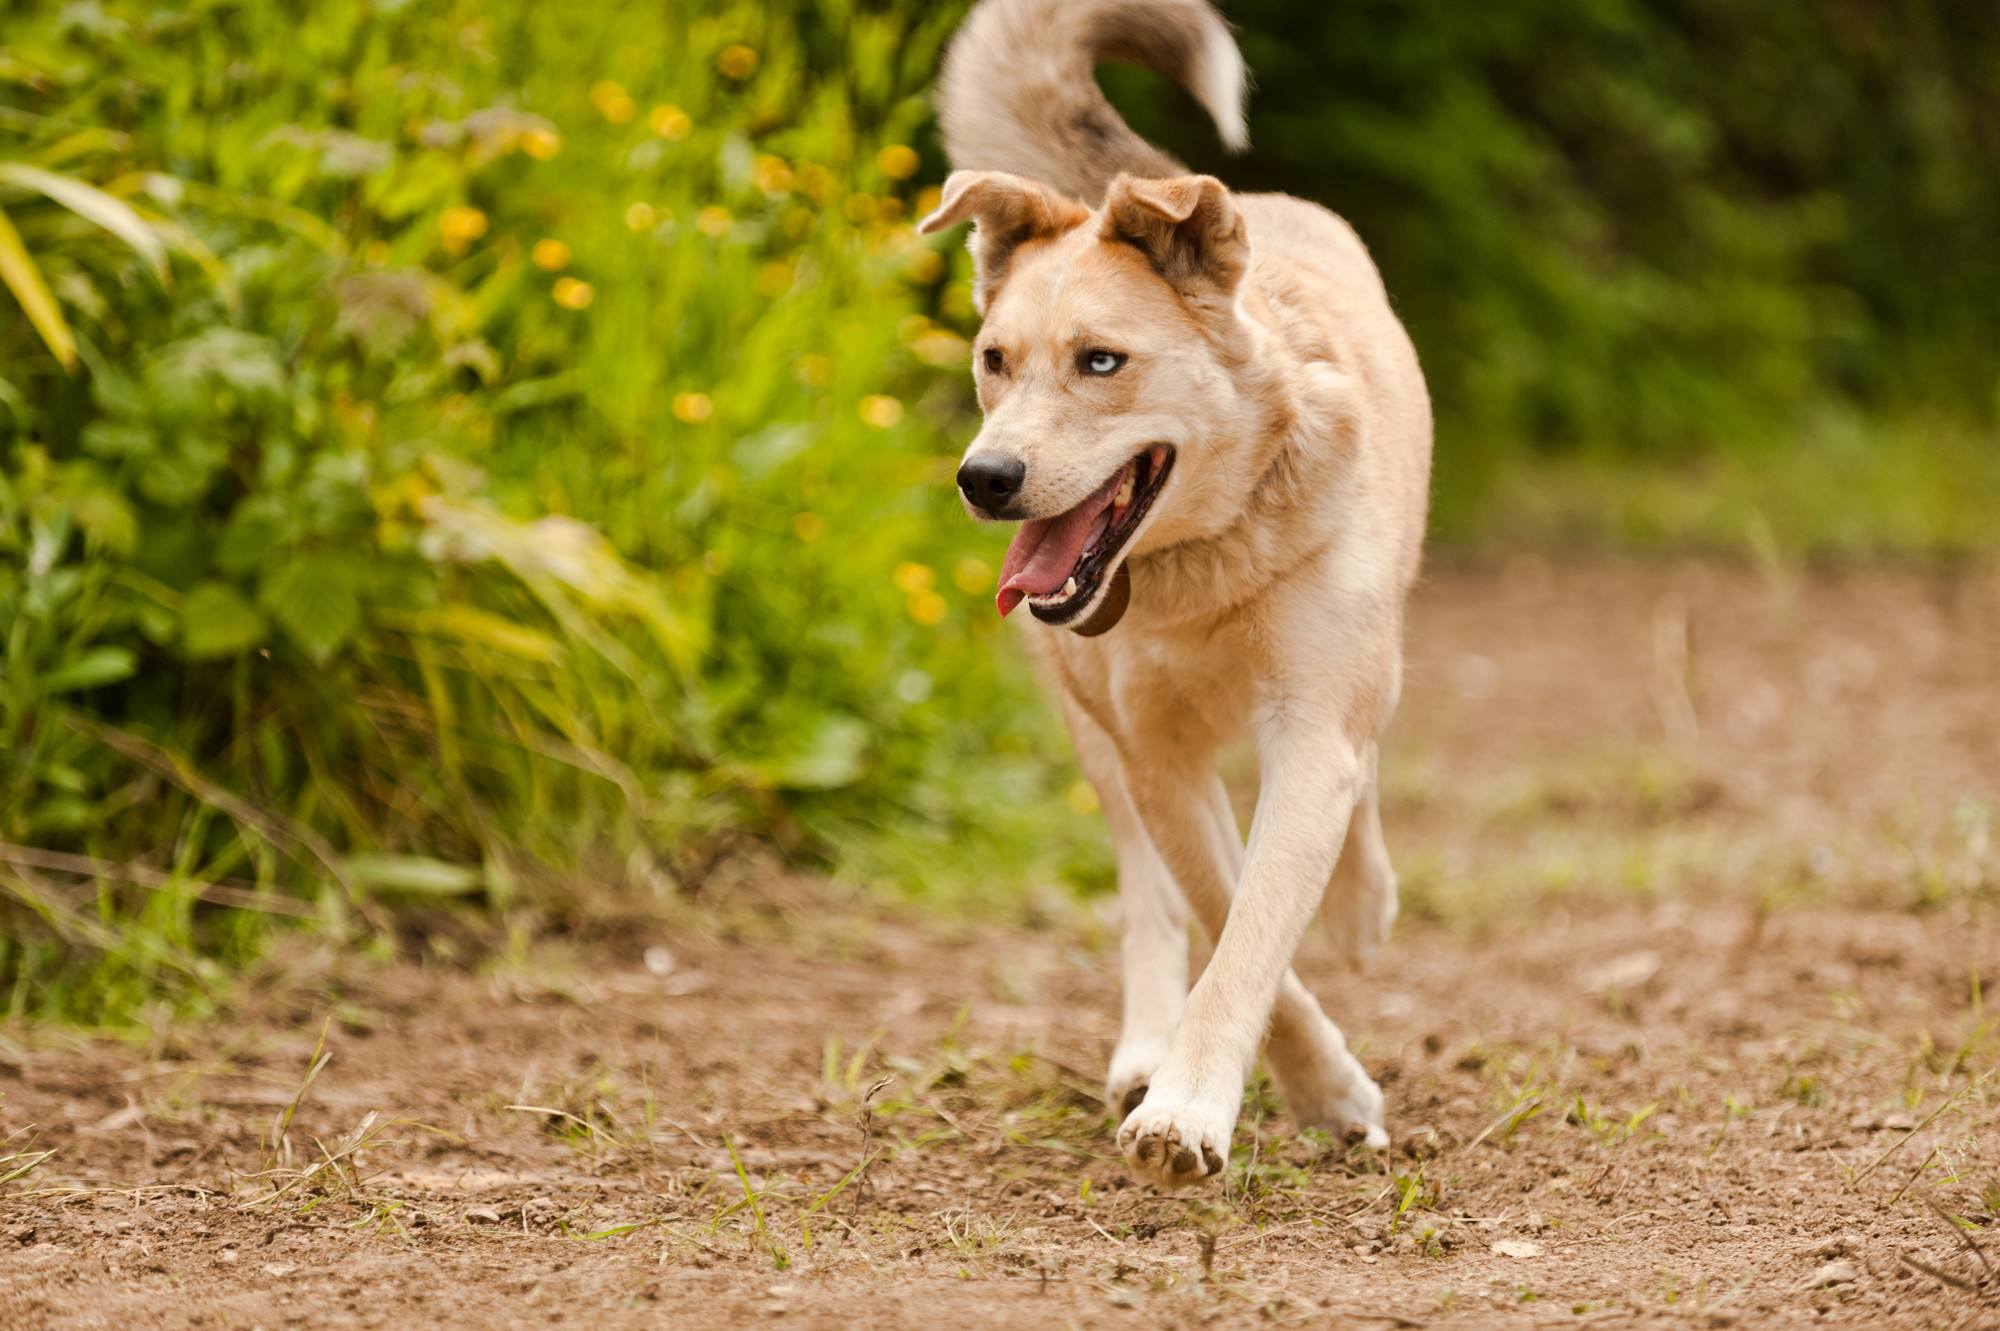 Treating Alabama Rot in Dogs | Blue Cross Advice